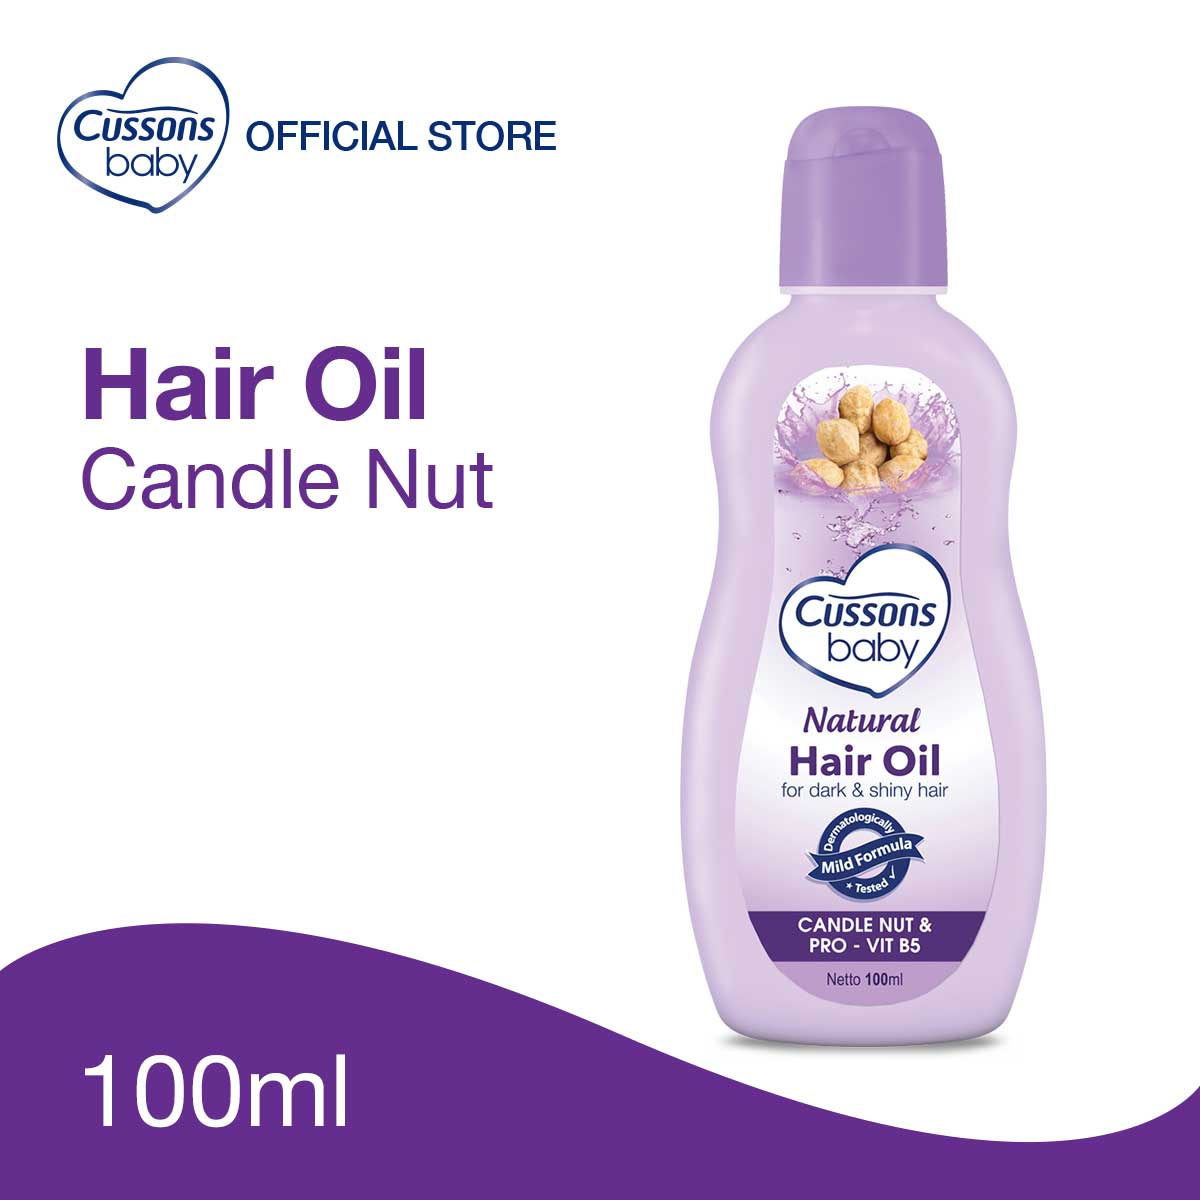 Cussons Baby Natural Hair Oil Candle Nut 100ml